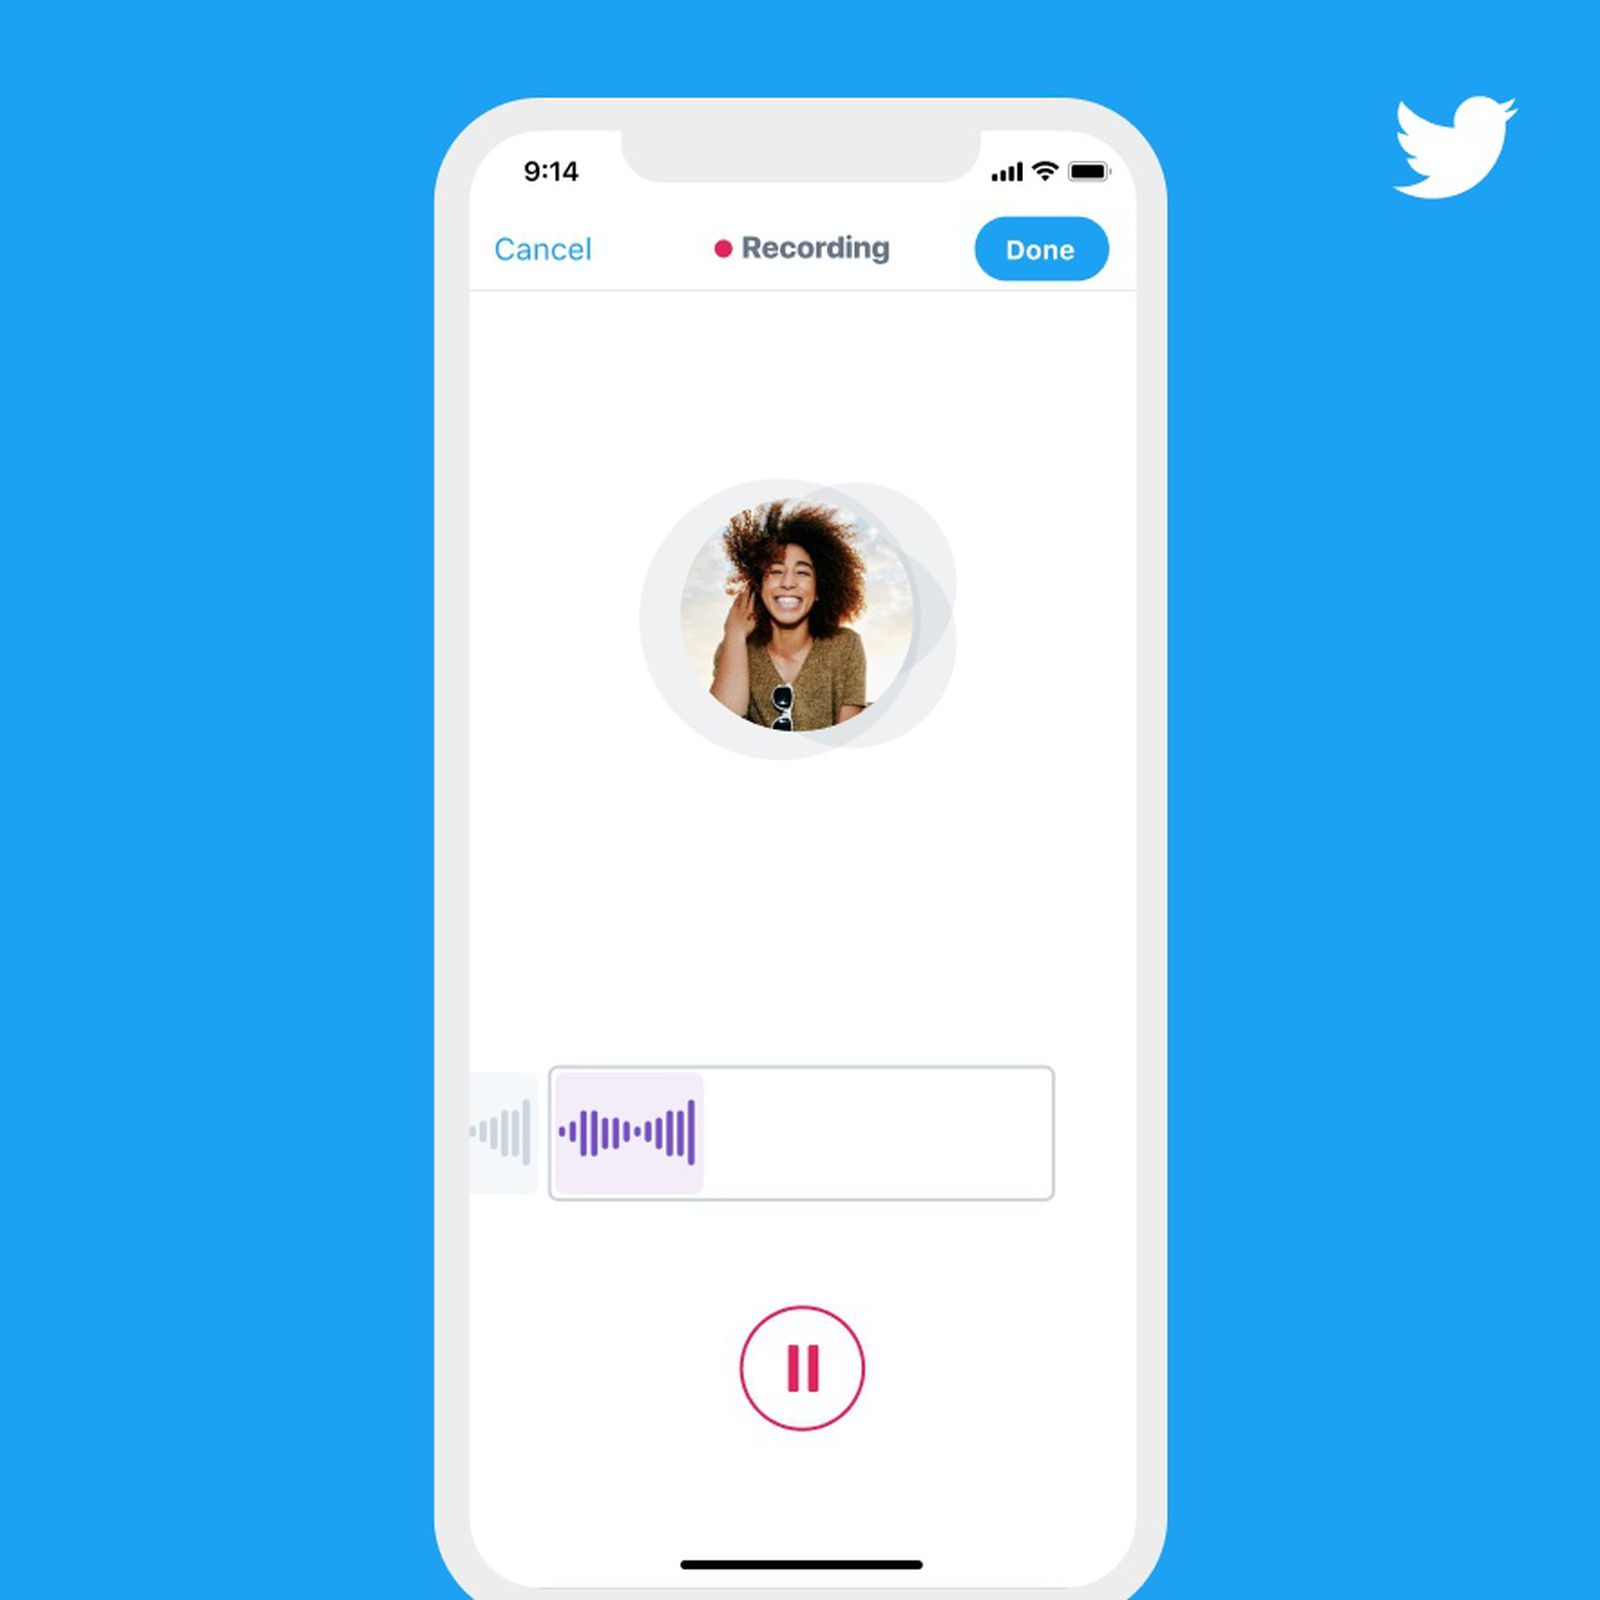 Twitter adds voice messaging service